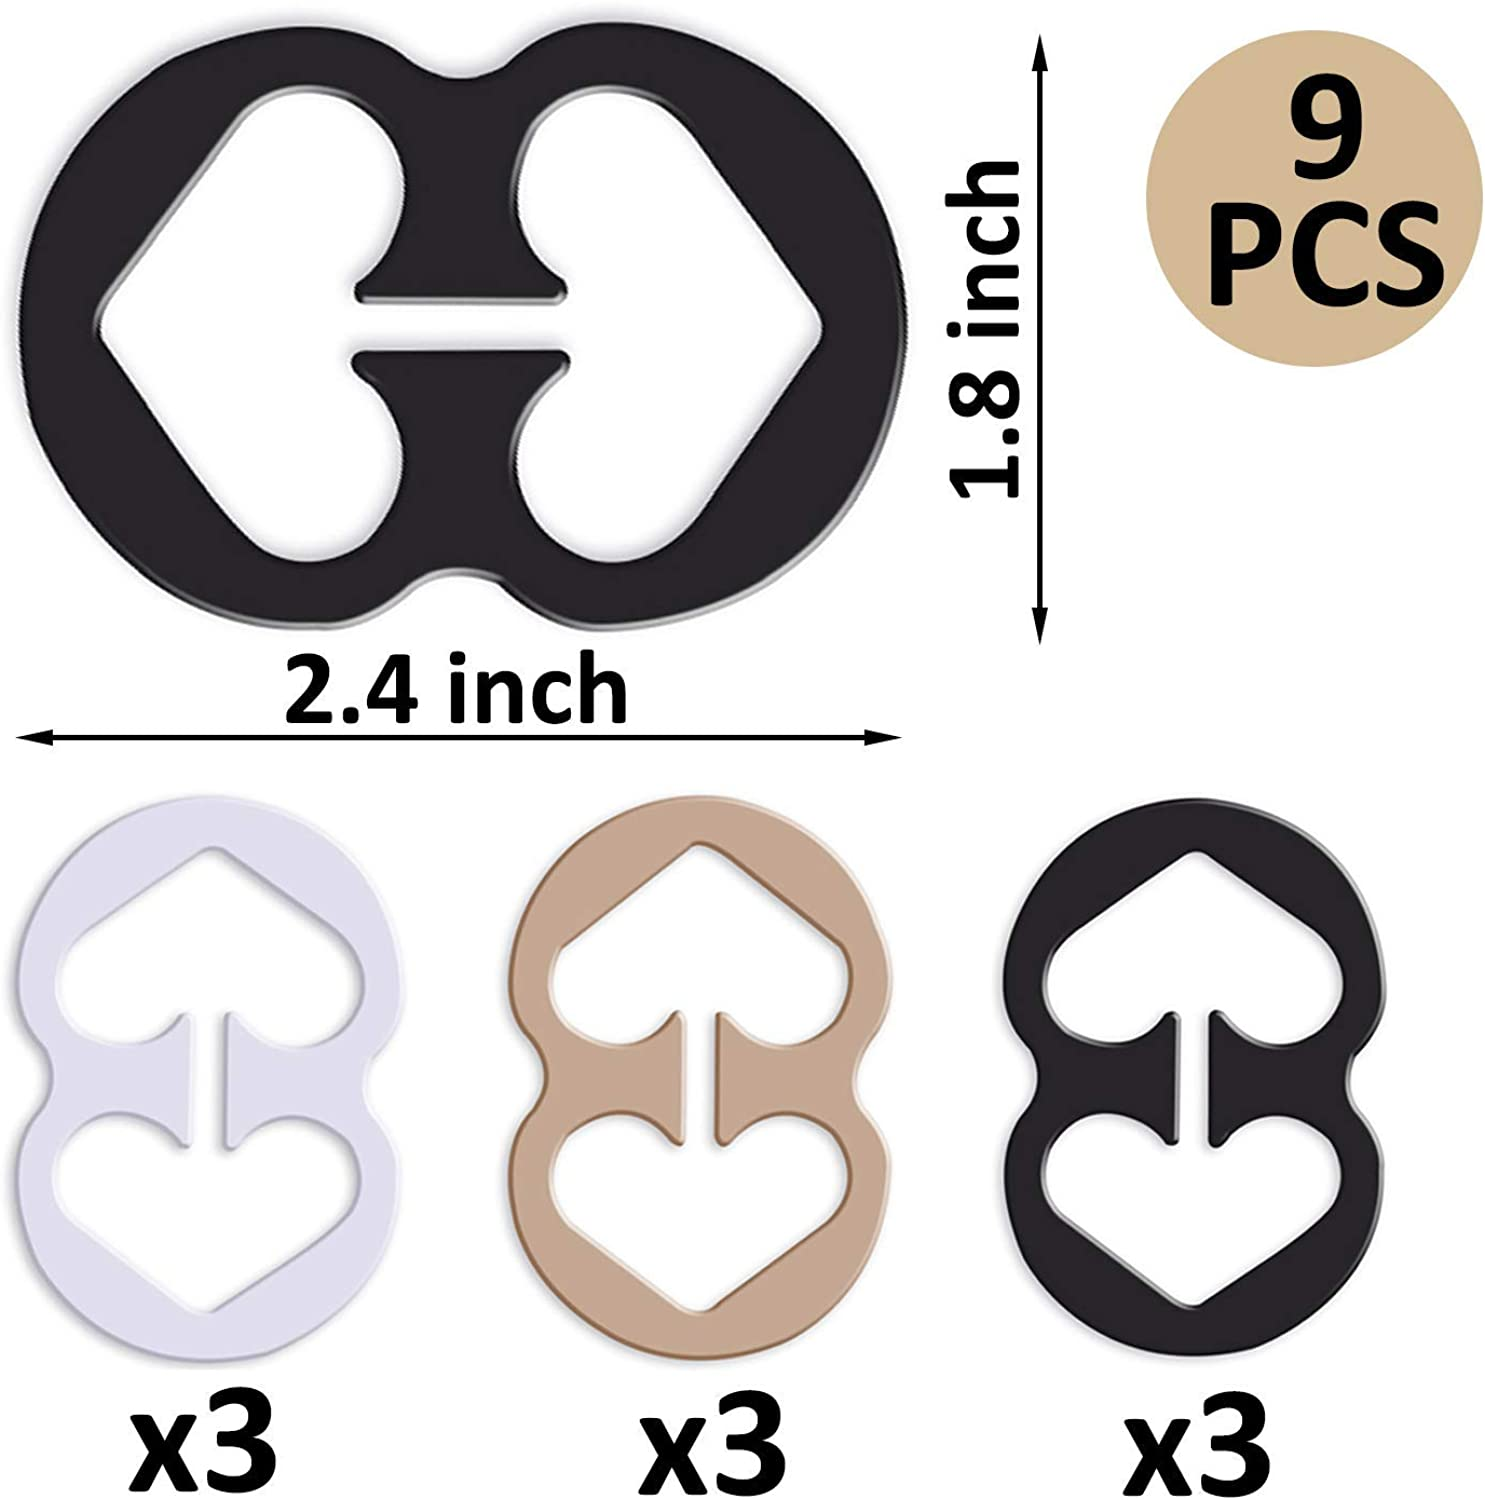 Black, Beige, Clear 9 Pcs Bra Strap Clips Conceal Straps Holders for Cleavage Enhance Control Non-Slip Bra Clips for Racer Back Tank Tops